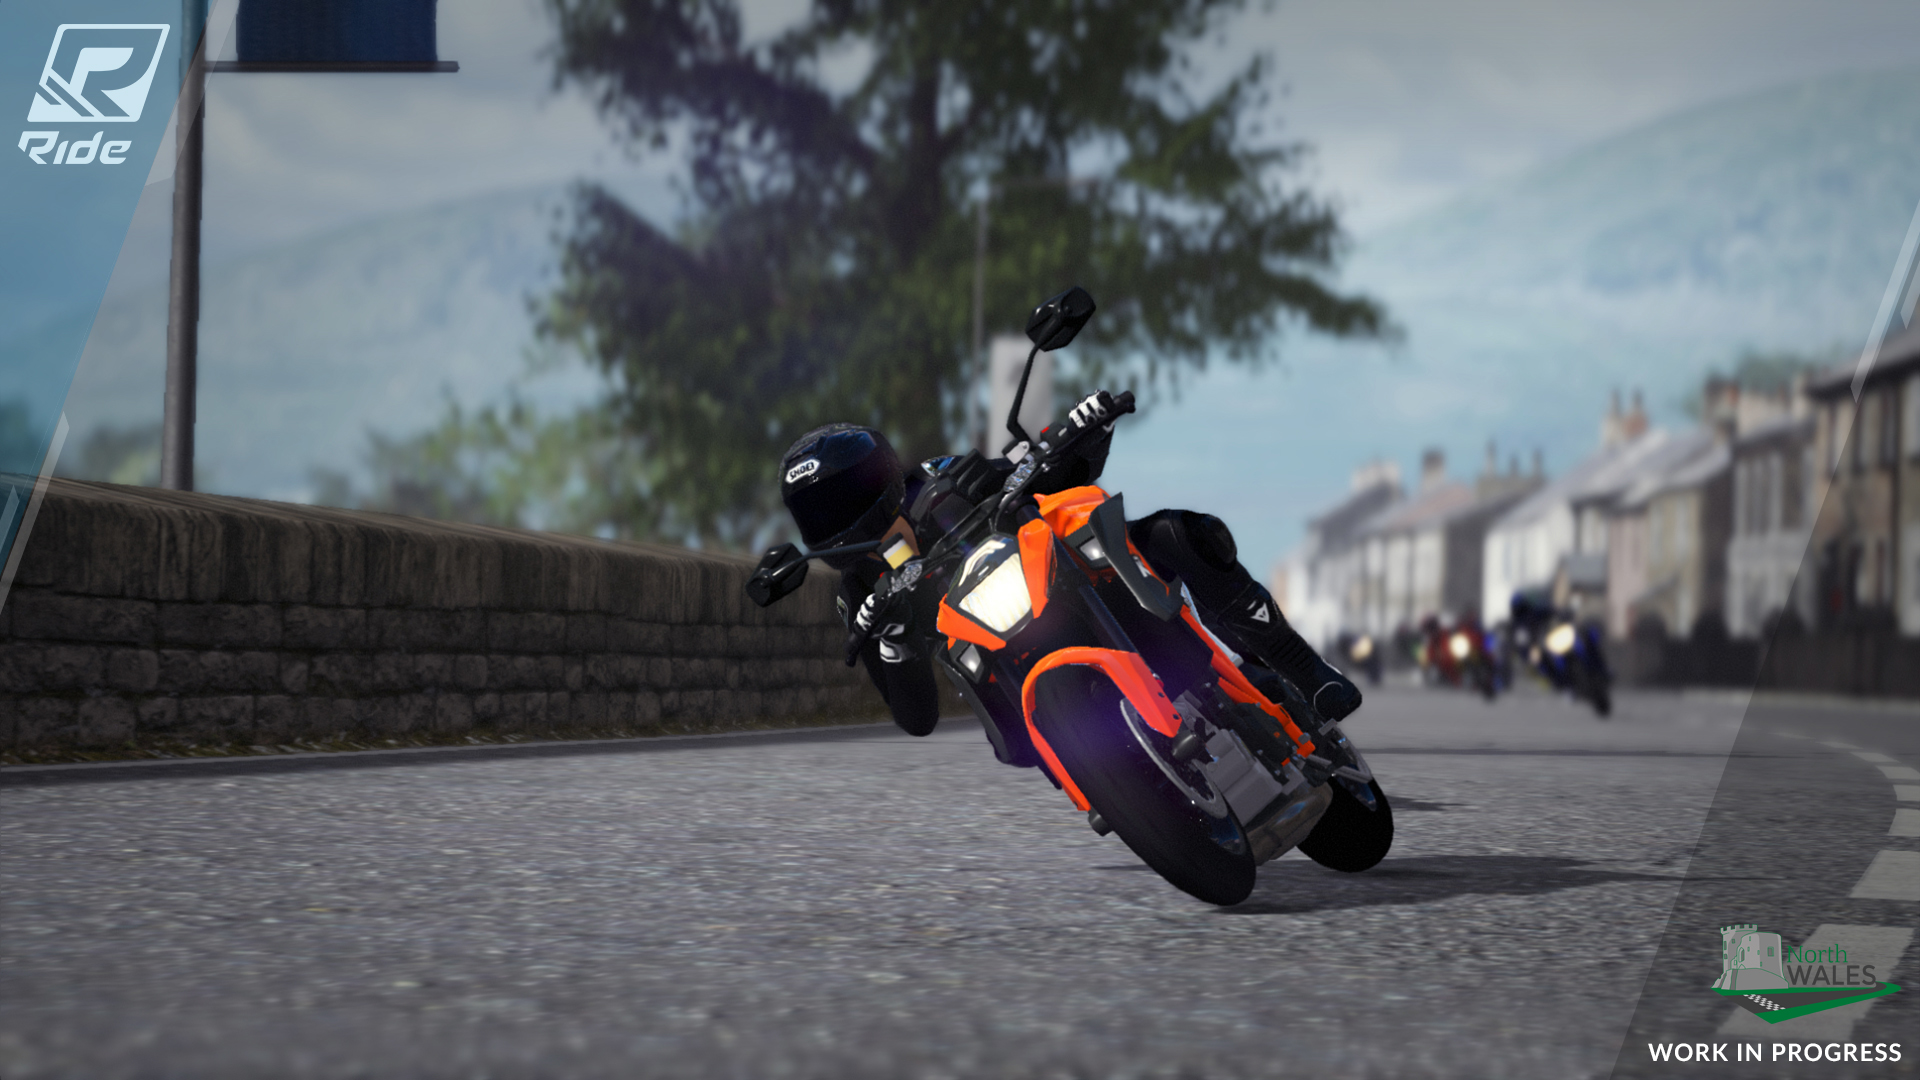 RIDE screenshot